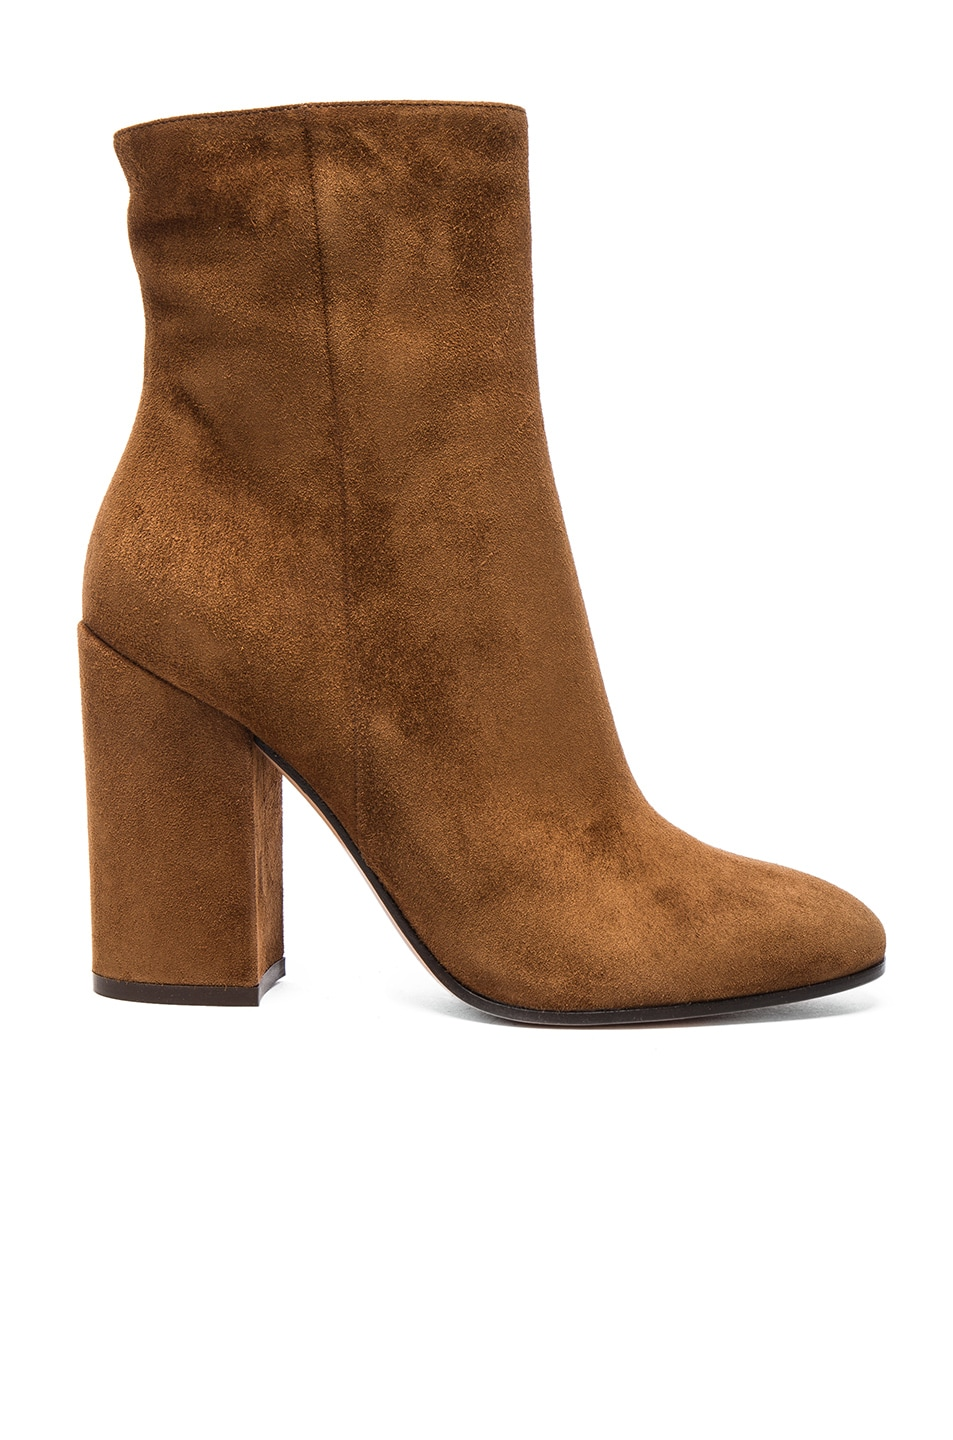 Image 1 of Gianvito Rossi Suede Boots in Texas